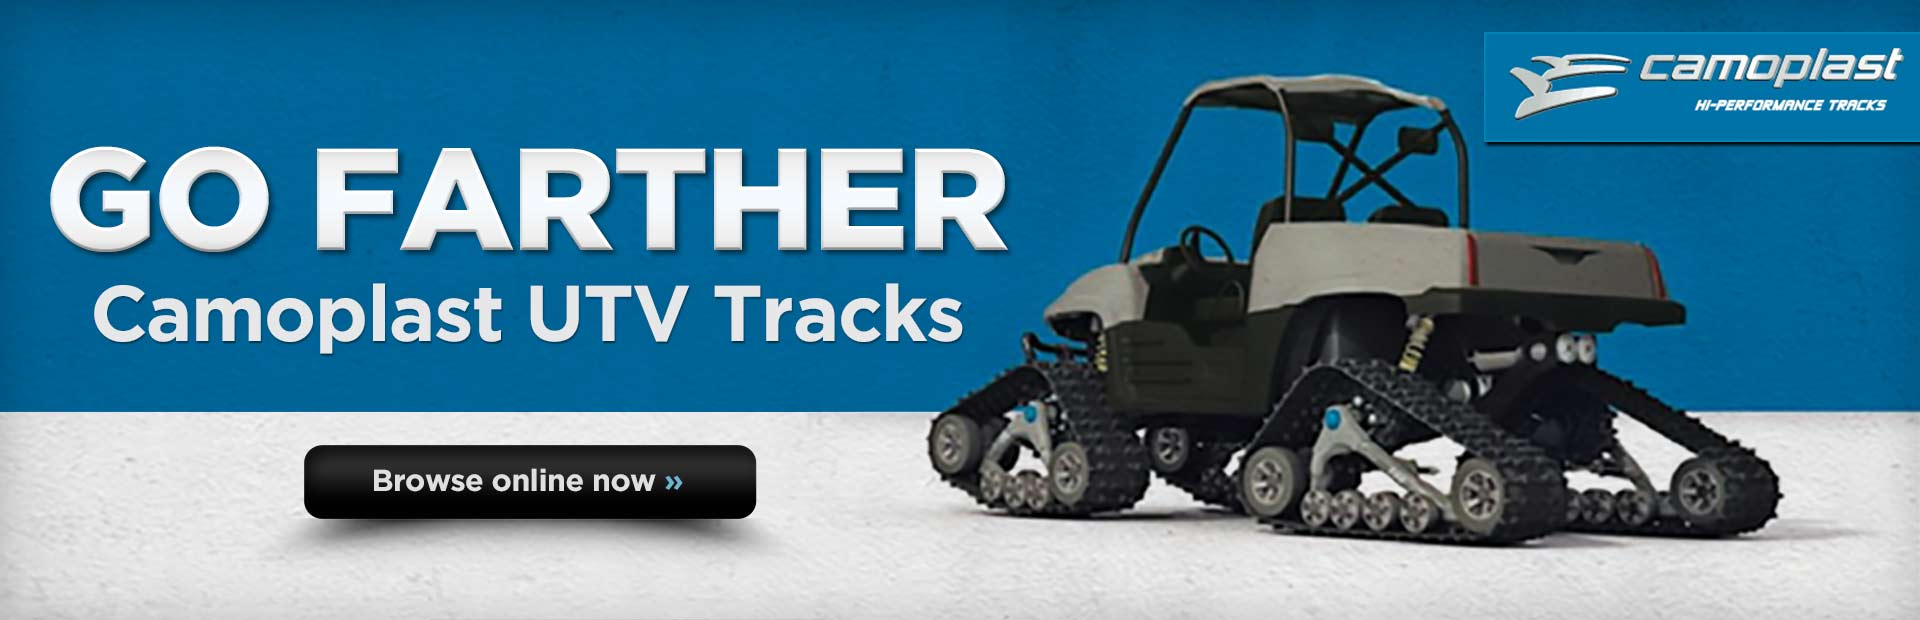 Click here to browse Camoplast UTV tracks.